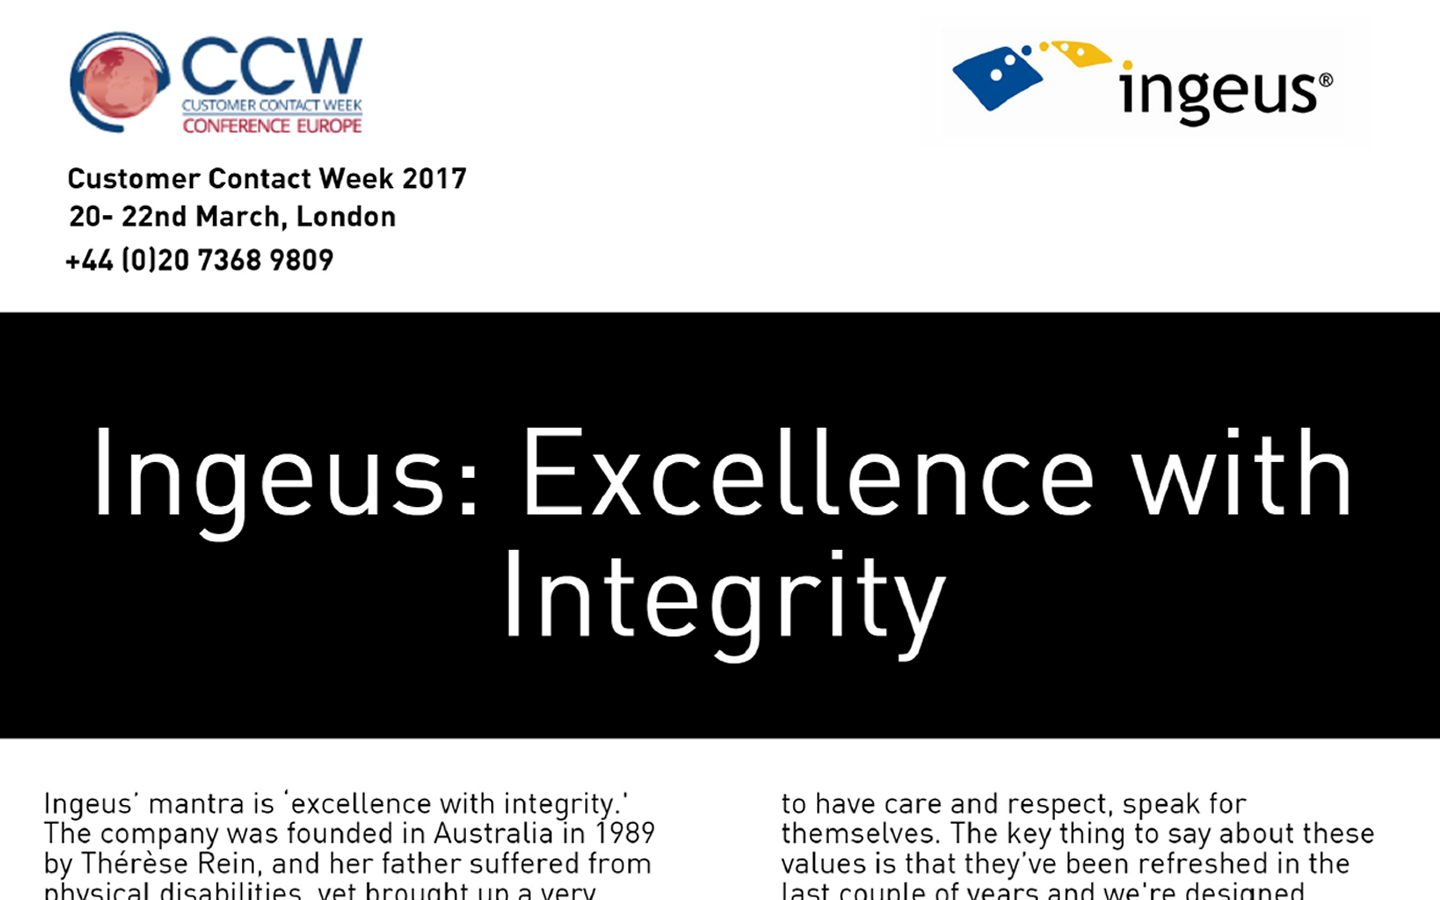 INGEUS: EXCELLENCE WITH INTEGRITY